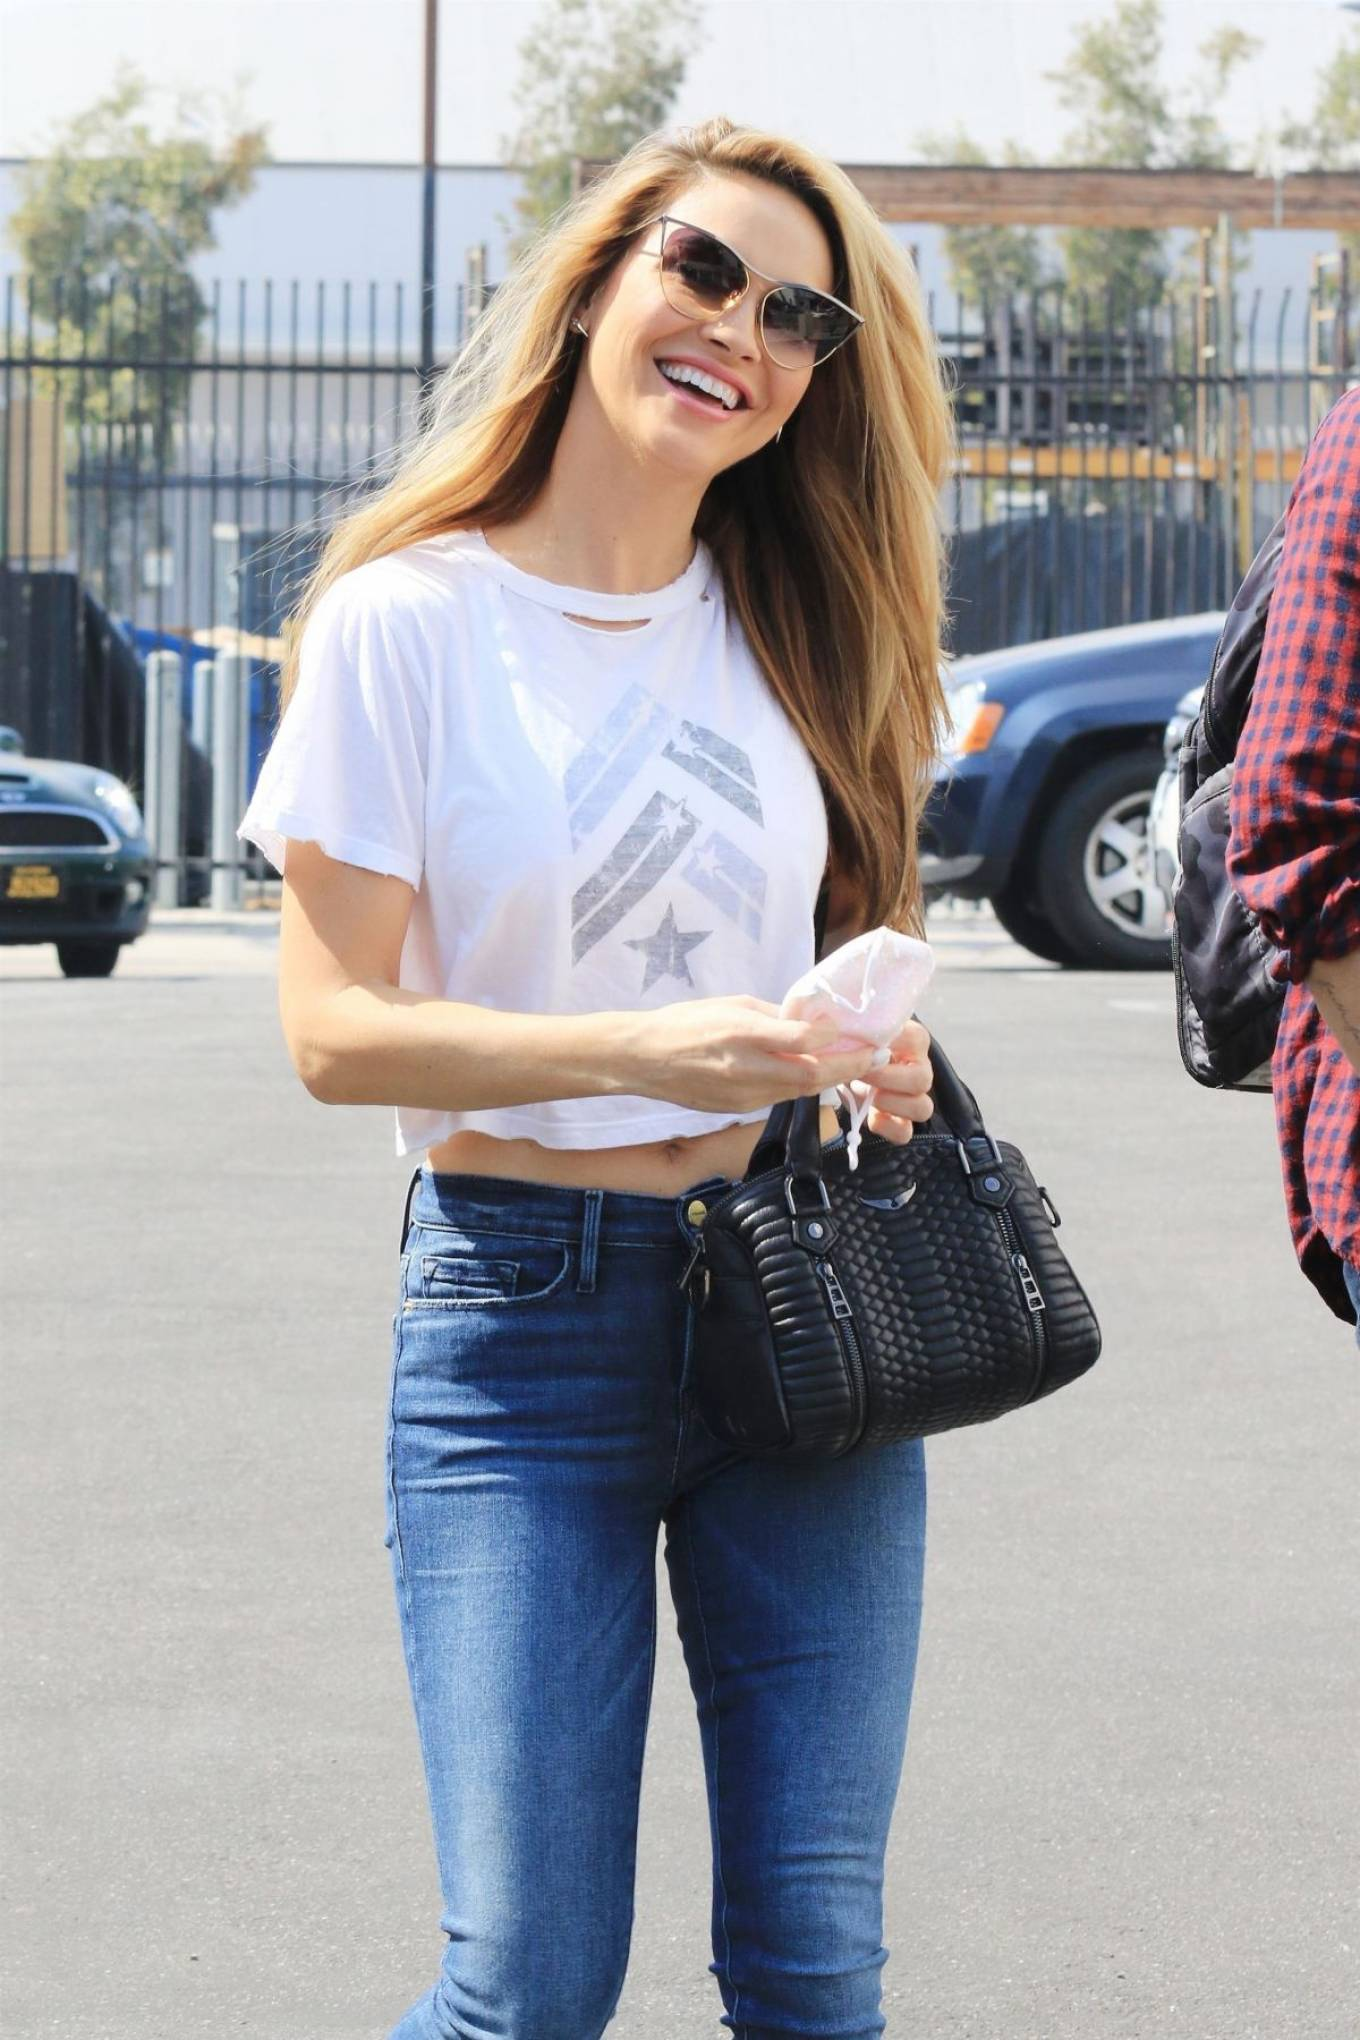 Chrishell Stause - In denim seen arriving at DWTS Studio in Los Angeles